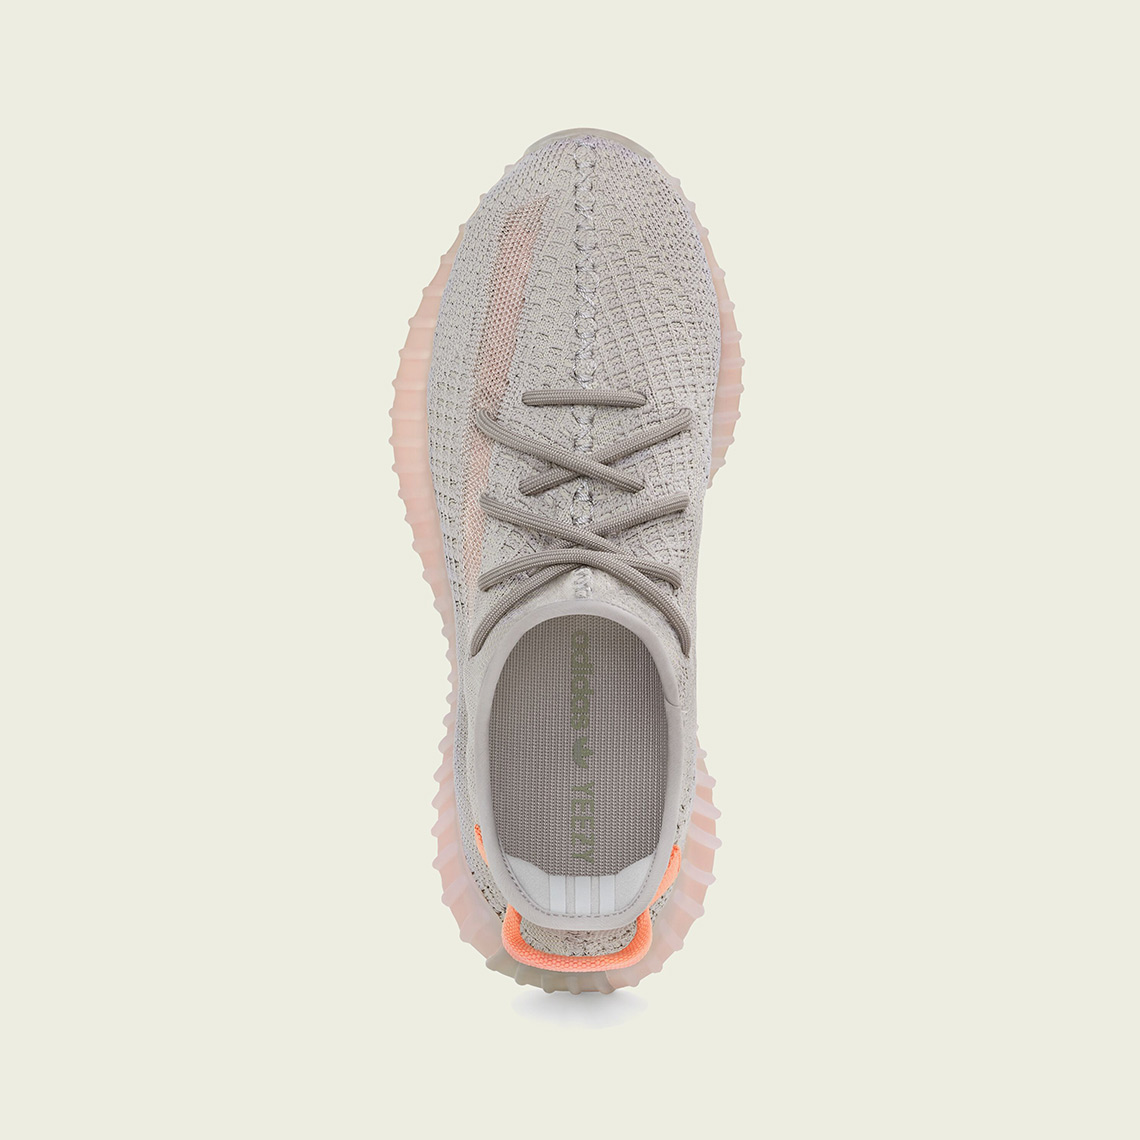 b9fd1f66e adidas Yeezy Boost 350 v2. Yeezy 350 TRFRM Buyer s Guide Release Date   March 16th